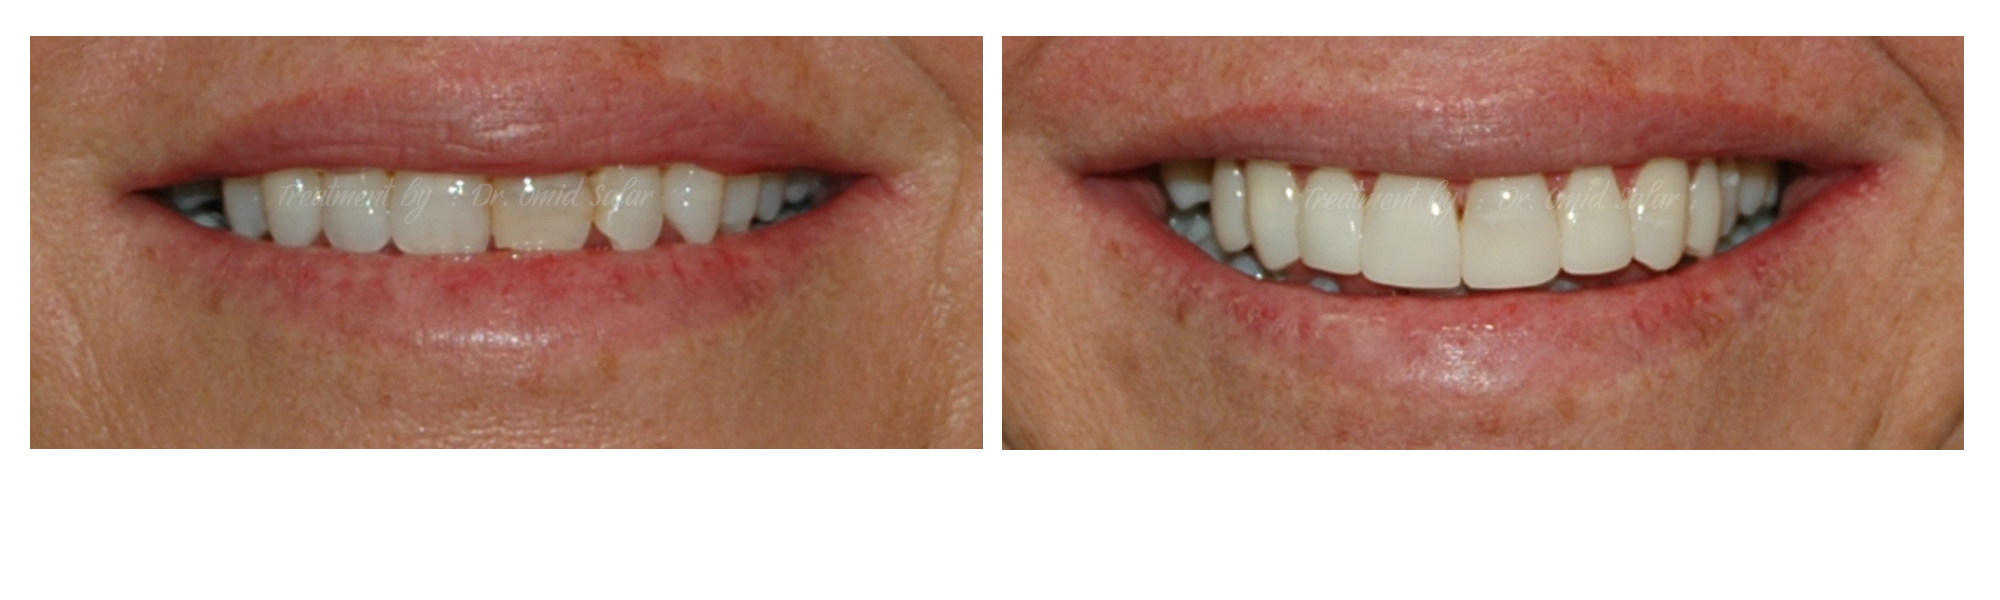 discolored teeth before after photos - composite veneers